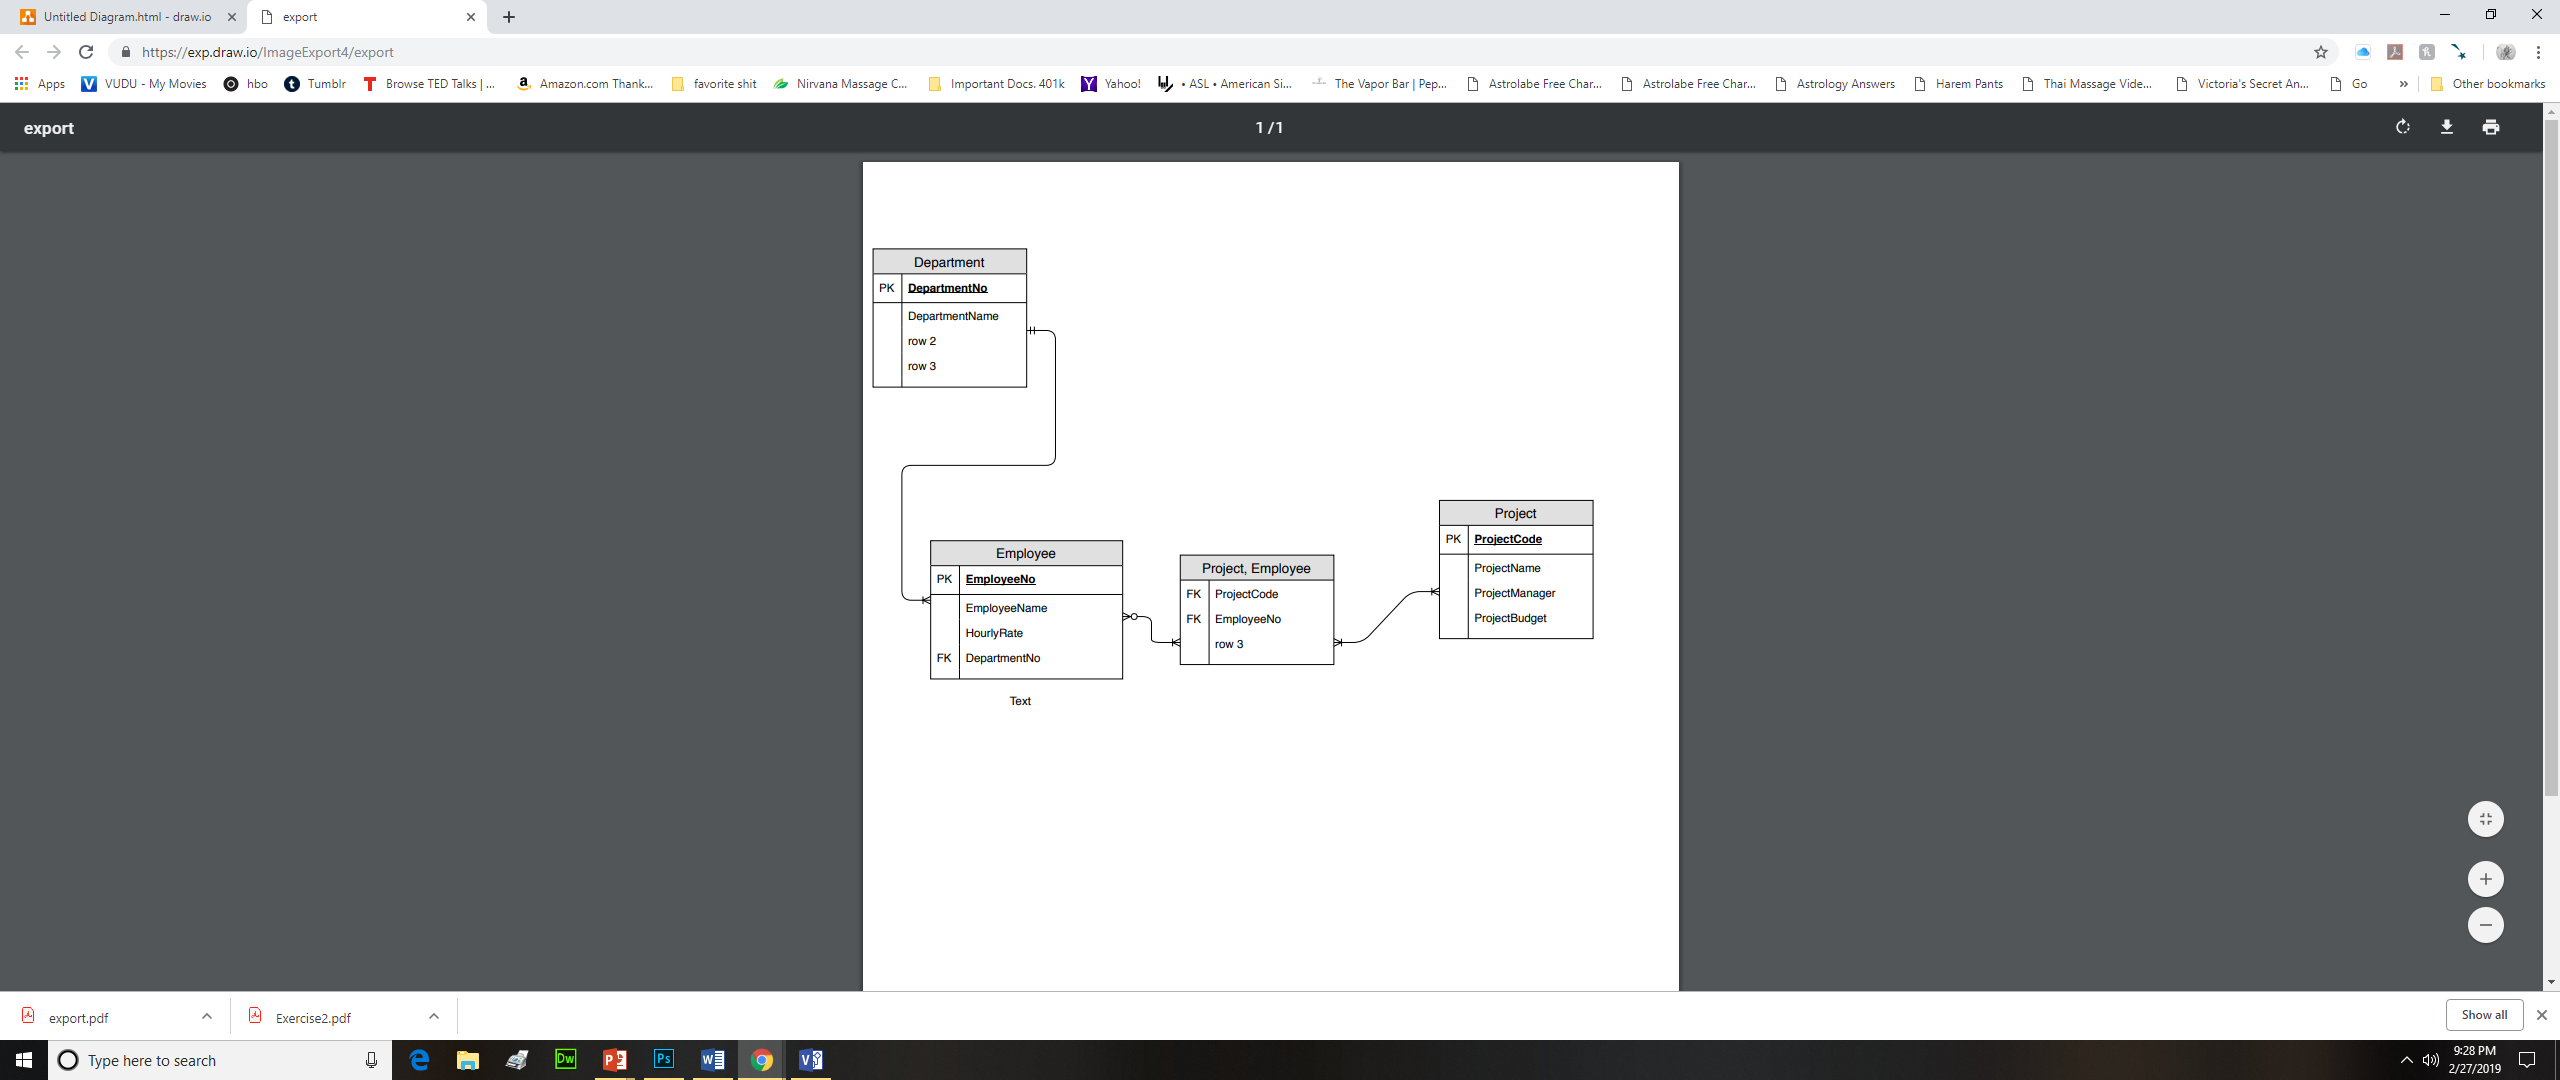 Untitiled Diagramhtml-draw.iox ← → https://exp.draw.io/ImageExport4/export export ps M VUDU My Mo es ๏ nbo O um bir T Browse TED Talks a Amazoncom Thank D favo te shit -Nirvana Massage C D Important Docs. 401k ASL . Am encan S. D D D Tha Massage Vide. D Victor 's Secret An D Other book narks rahoo! t The Vapor Bar Pep. Astrolabe Free Char. Astro abe F ee Char. Astrology Answers Harem Pants Go » export Department Project PK ProjectCode Employee Project, Employee FK ProjectCode FK EmployeeNo ow 3 FK DepartmentNo Text export pdf Exercise2.pdf Show allX 9:28 PM Type here to search 2/27/2019